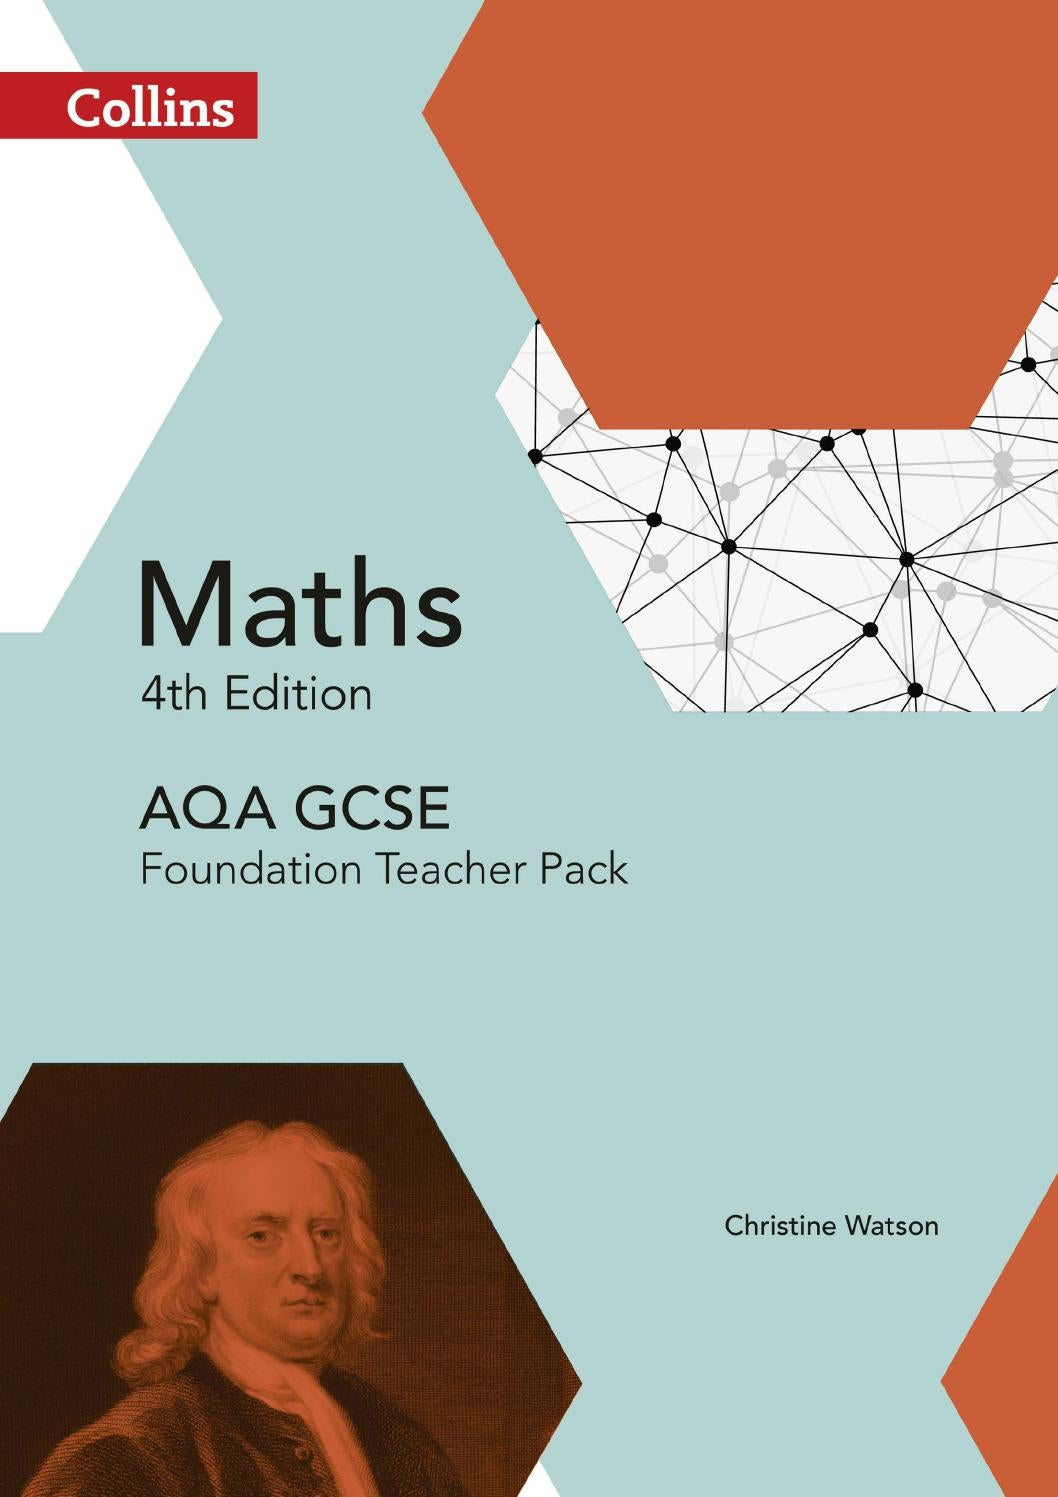 AQA Maths GCSE Foundation Teacher Pack by Collins - issuu